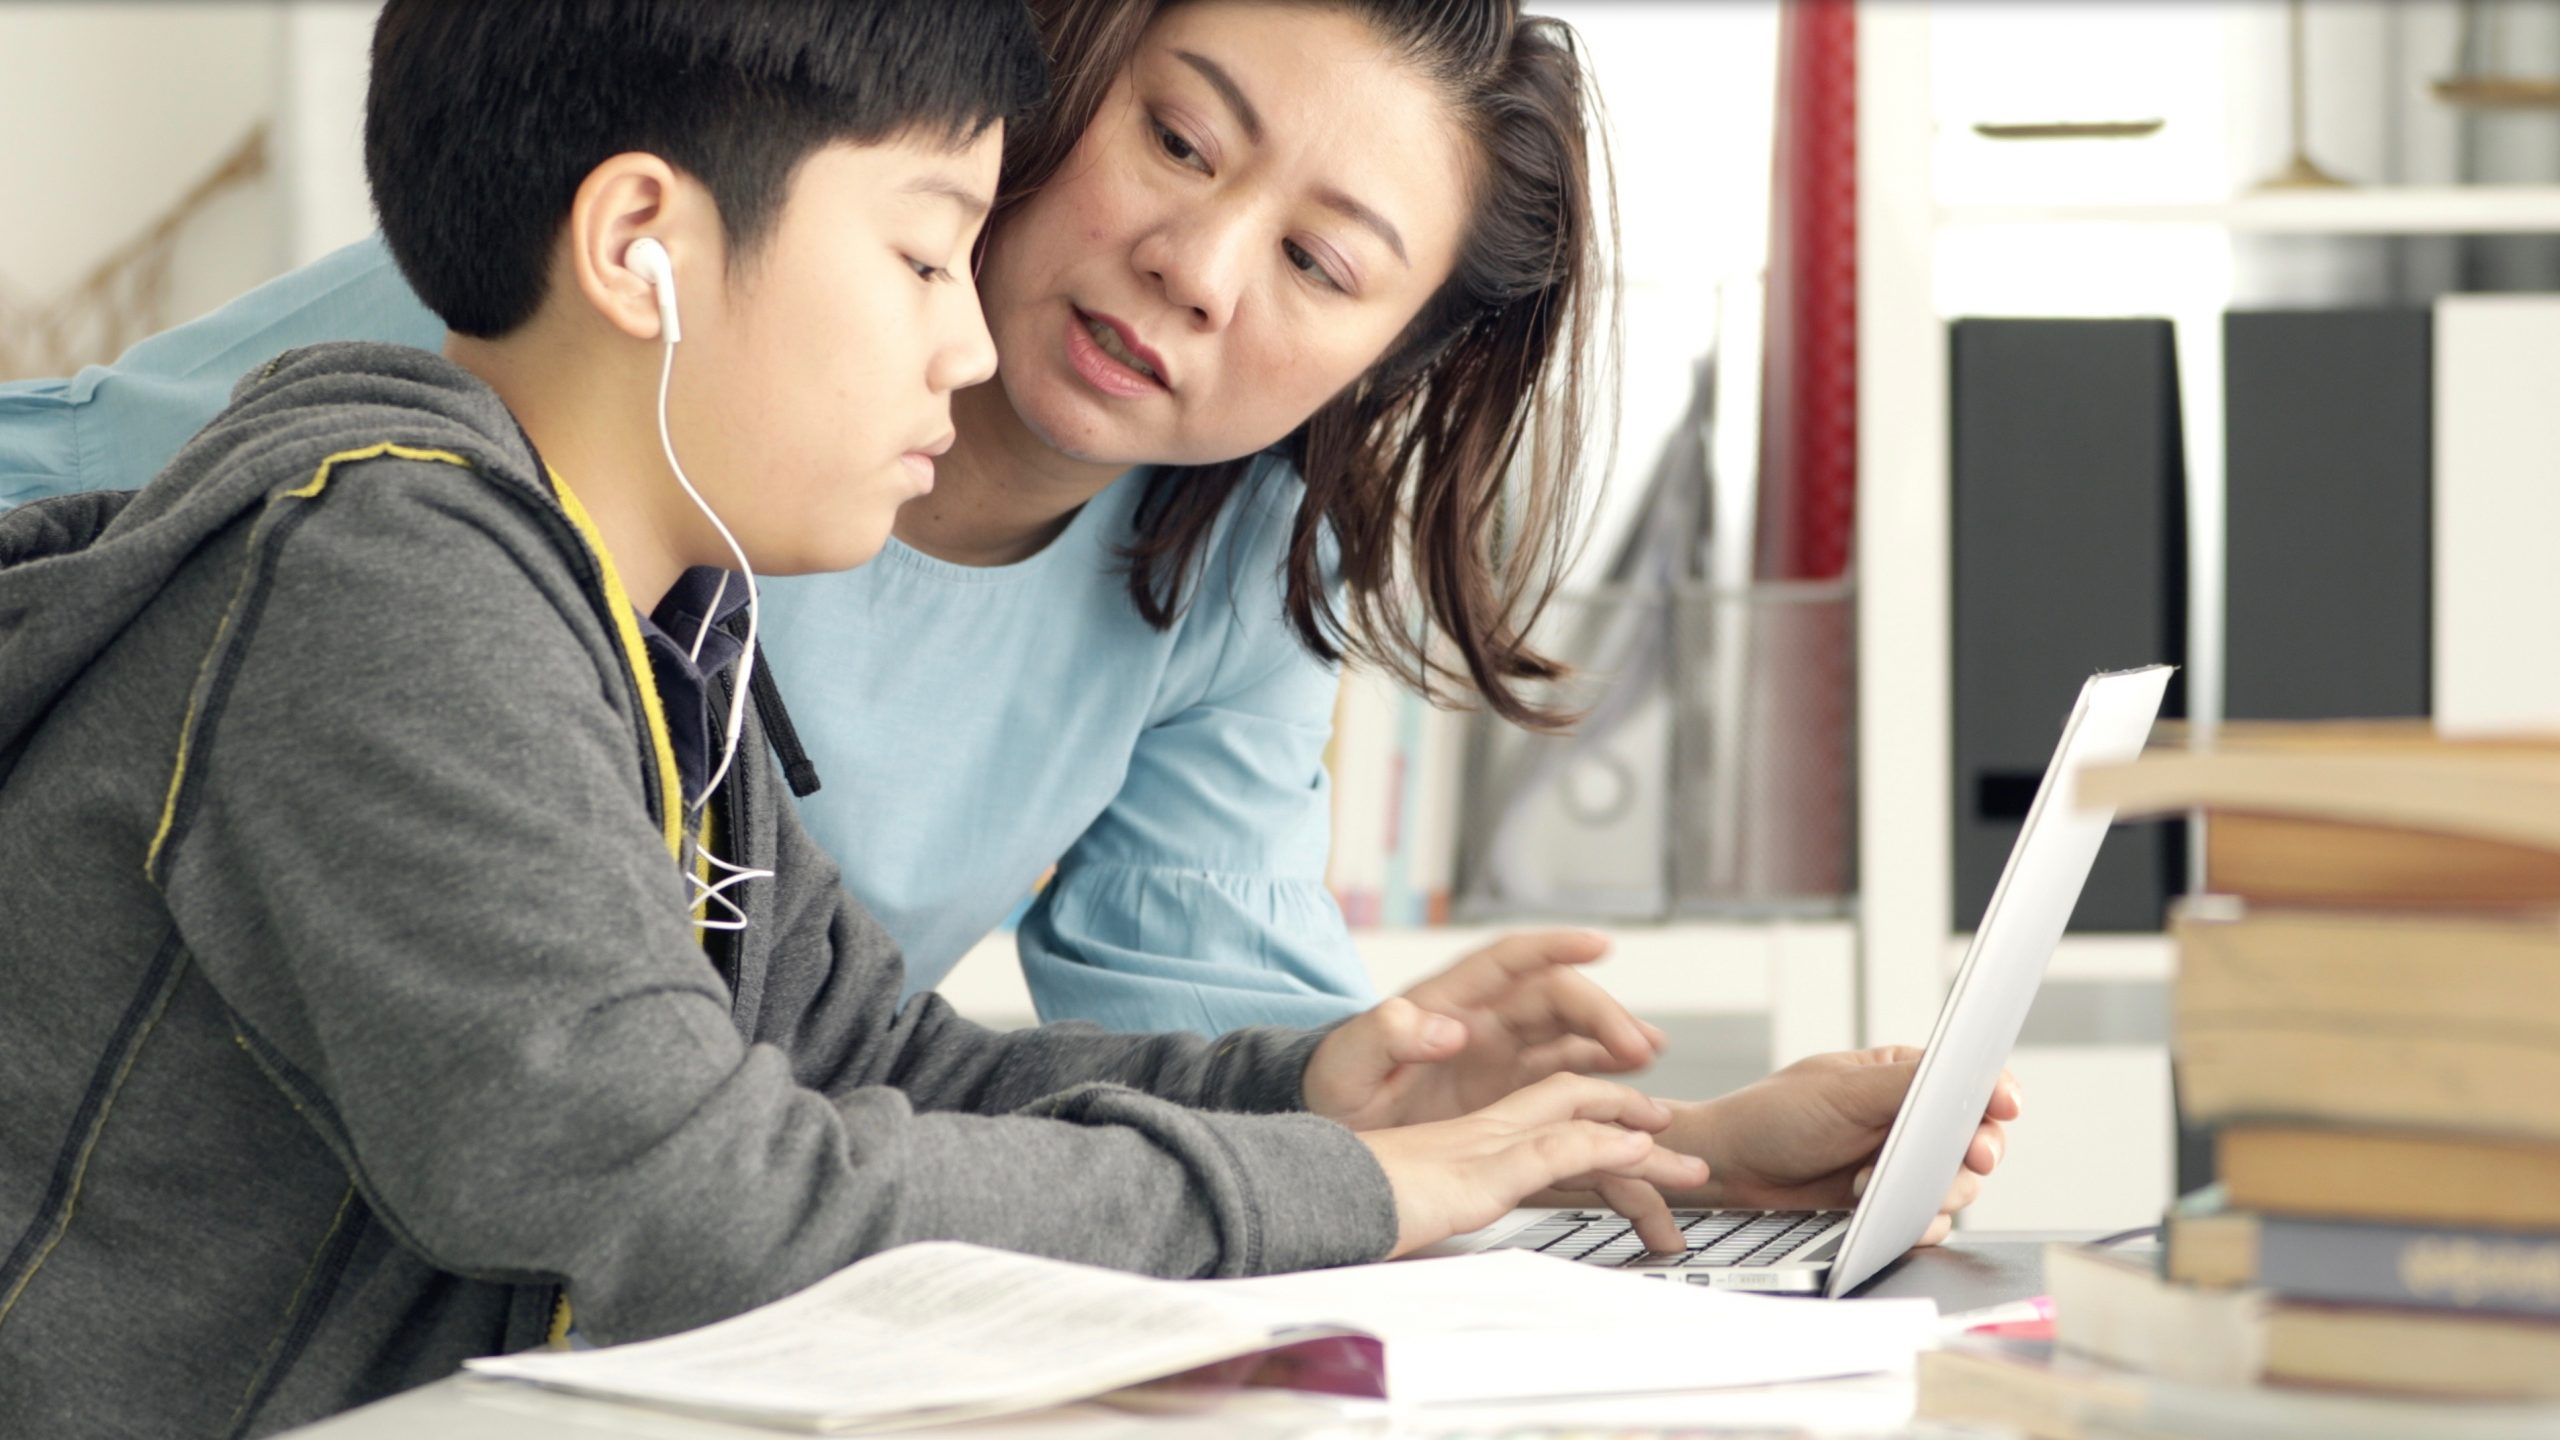 Mom helping middle school student with essential learning skills